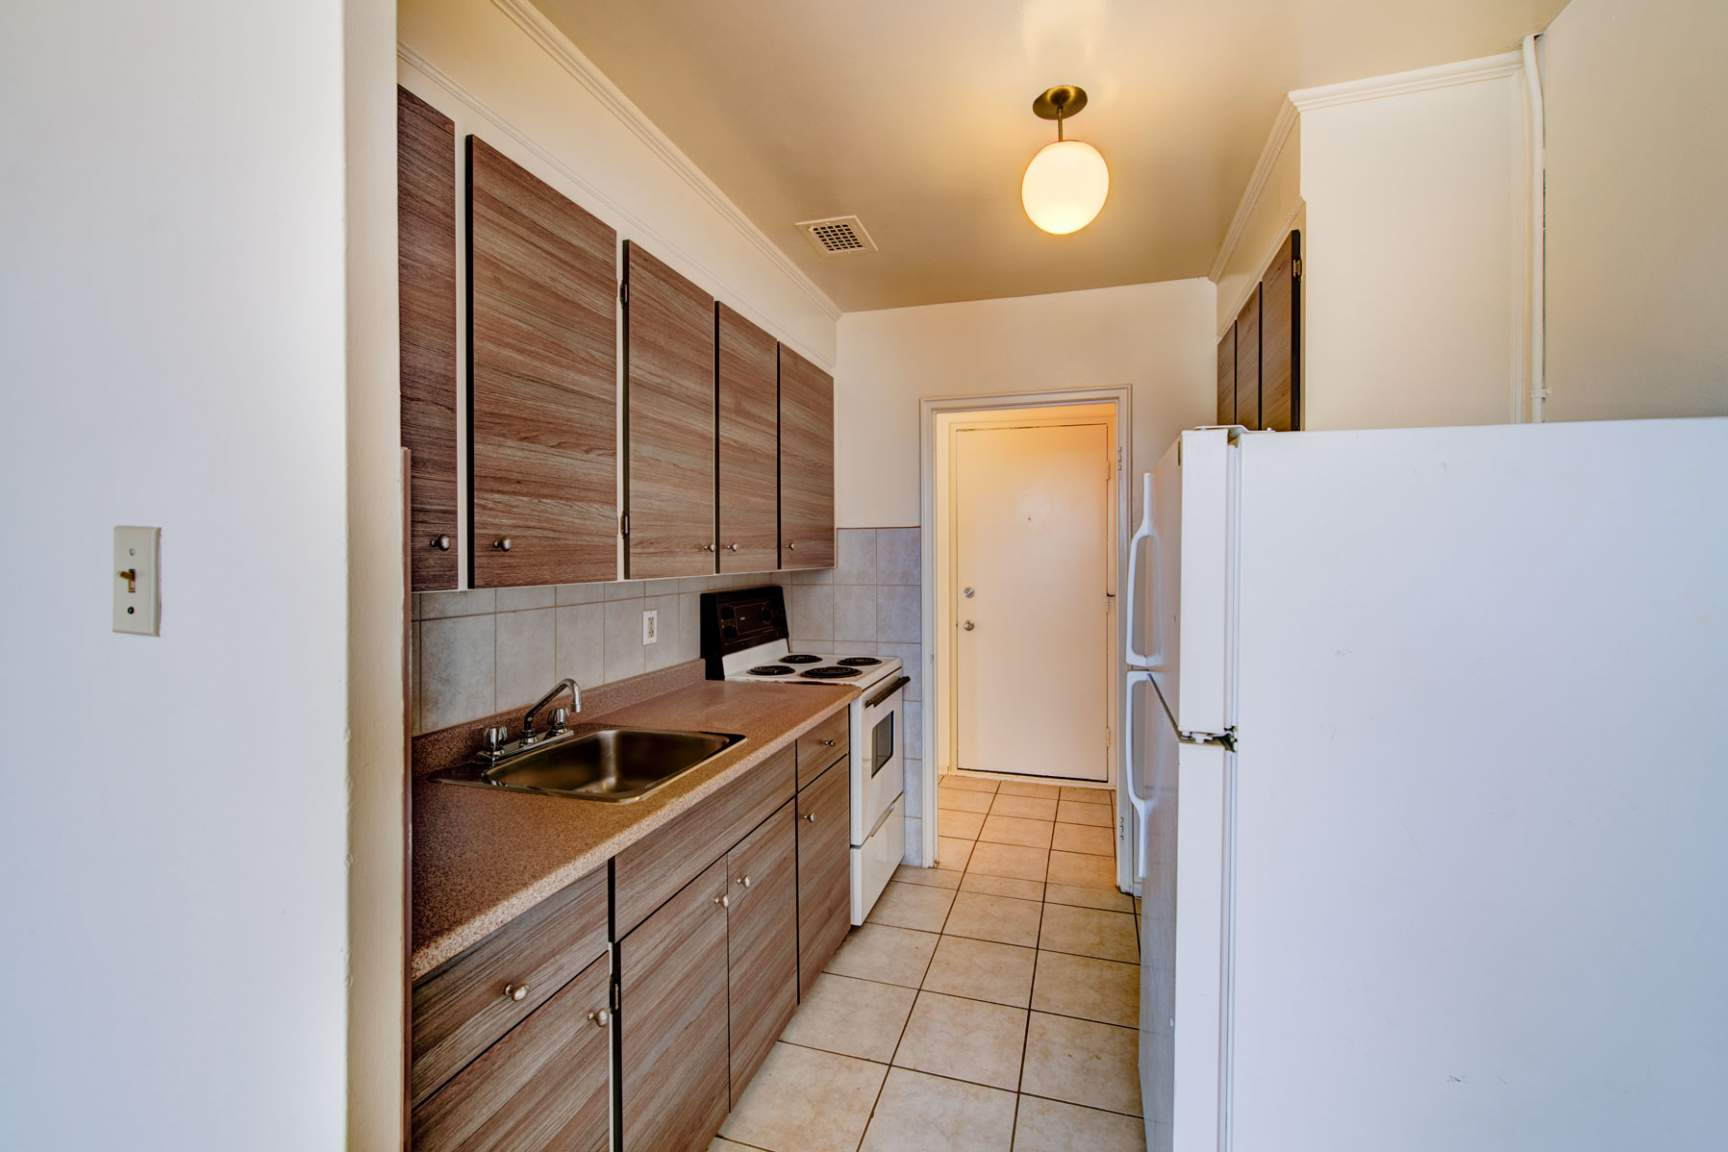 1 bedroom Apartments for rent in Toronto at Faywood - Vinci Community - Photo 09 - RentersPages – L402215